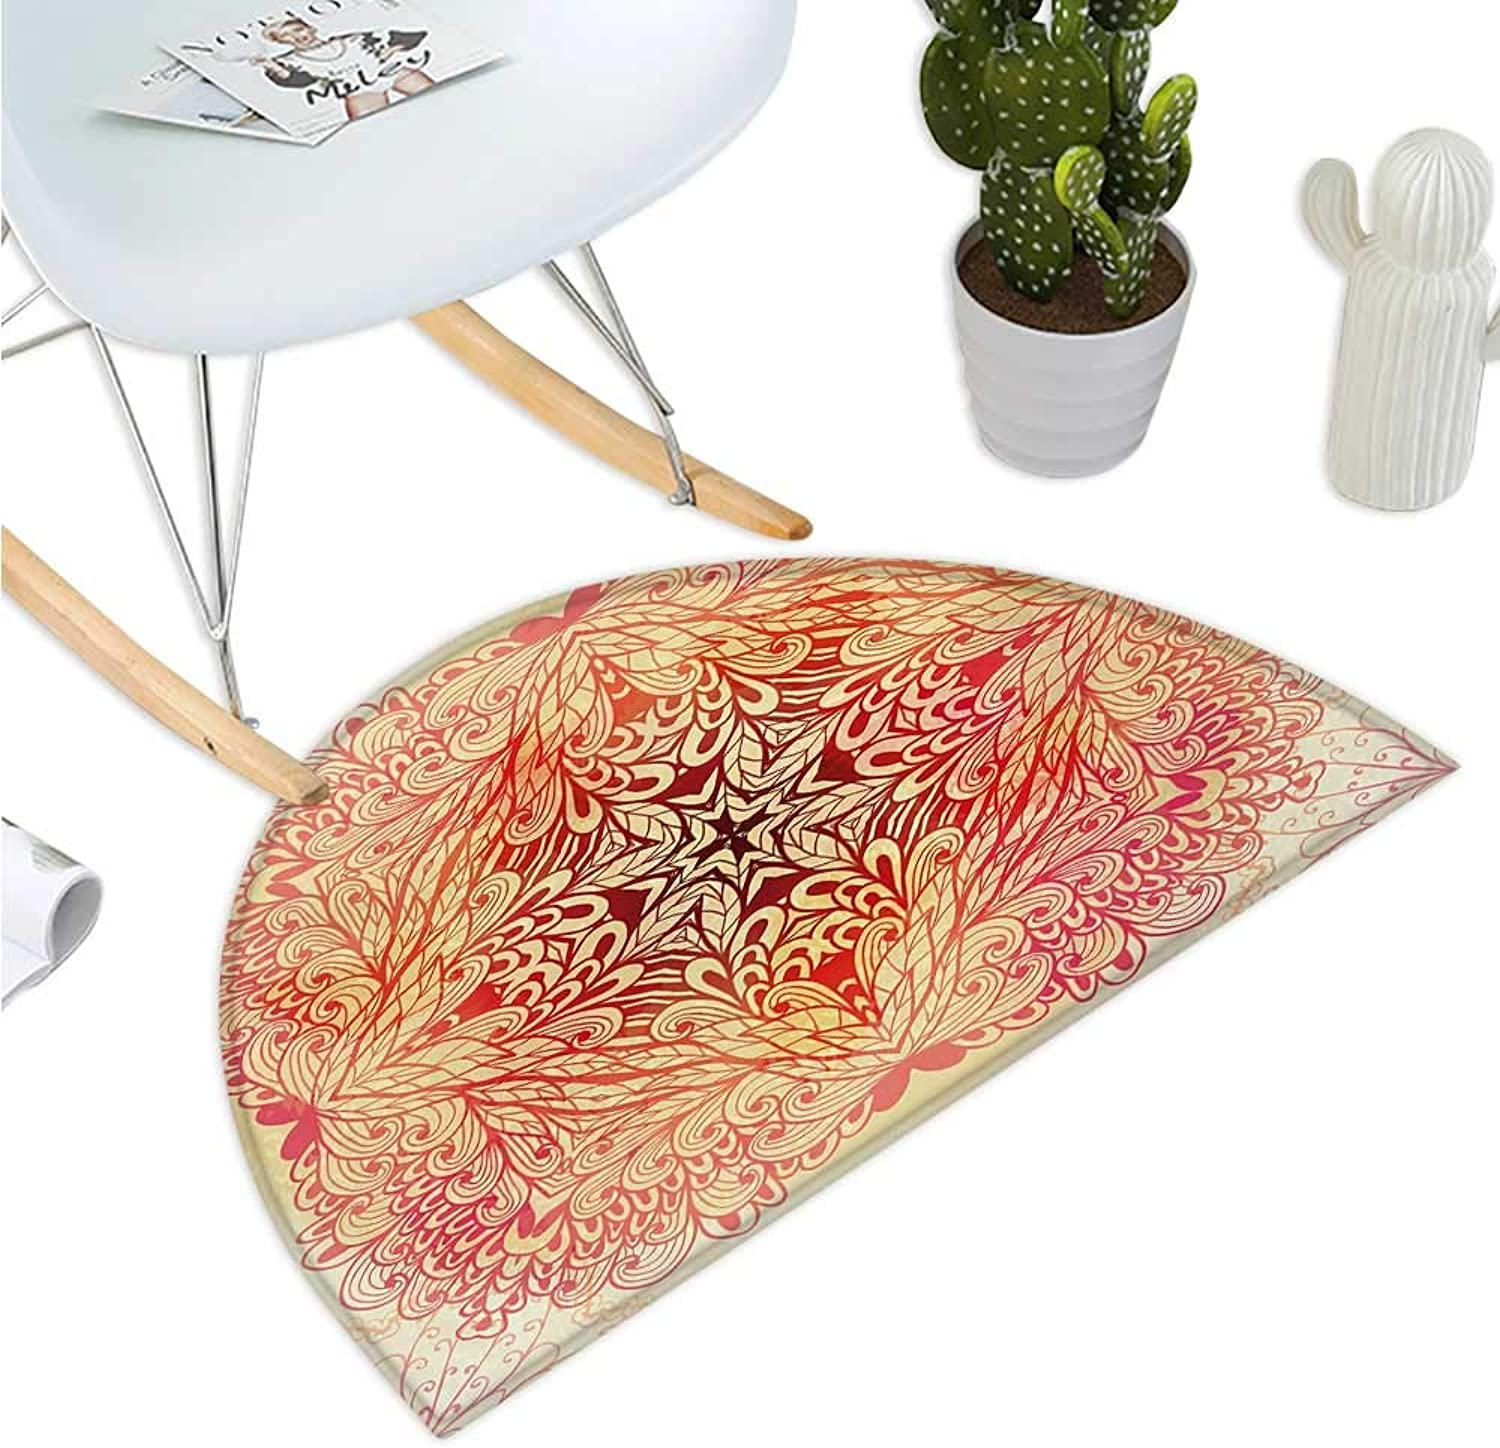 Red Mandala Semicircular Cushion Hand Drawn Doodle Style Flowers Swirls Ivy in Square Shape Image Bathroom Mat H 35.4  xD 53.1  Pink Yellow and White